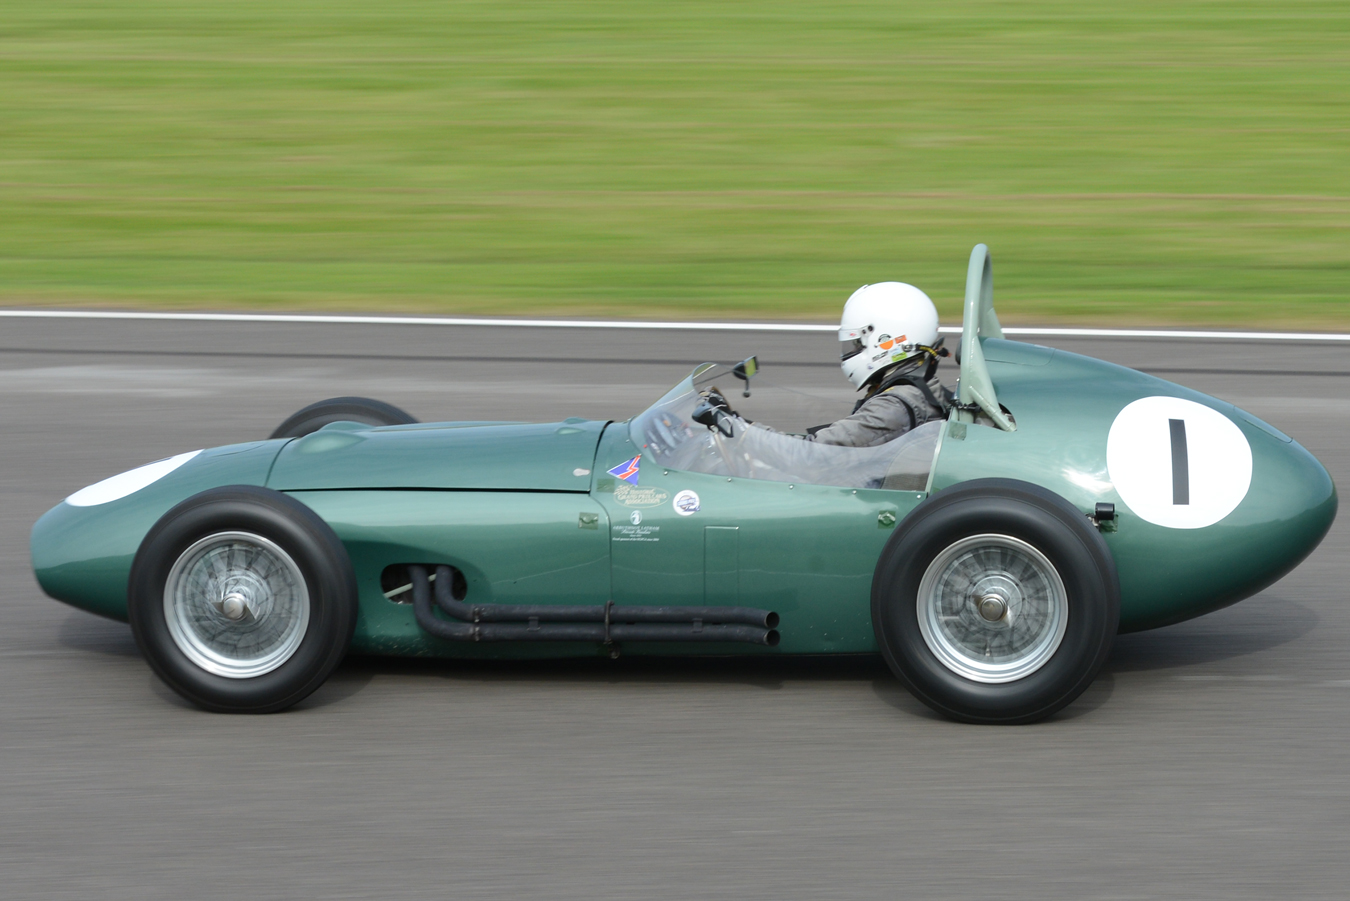 1959 Aston Martin DBR4 photo - 2